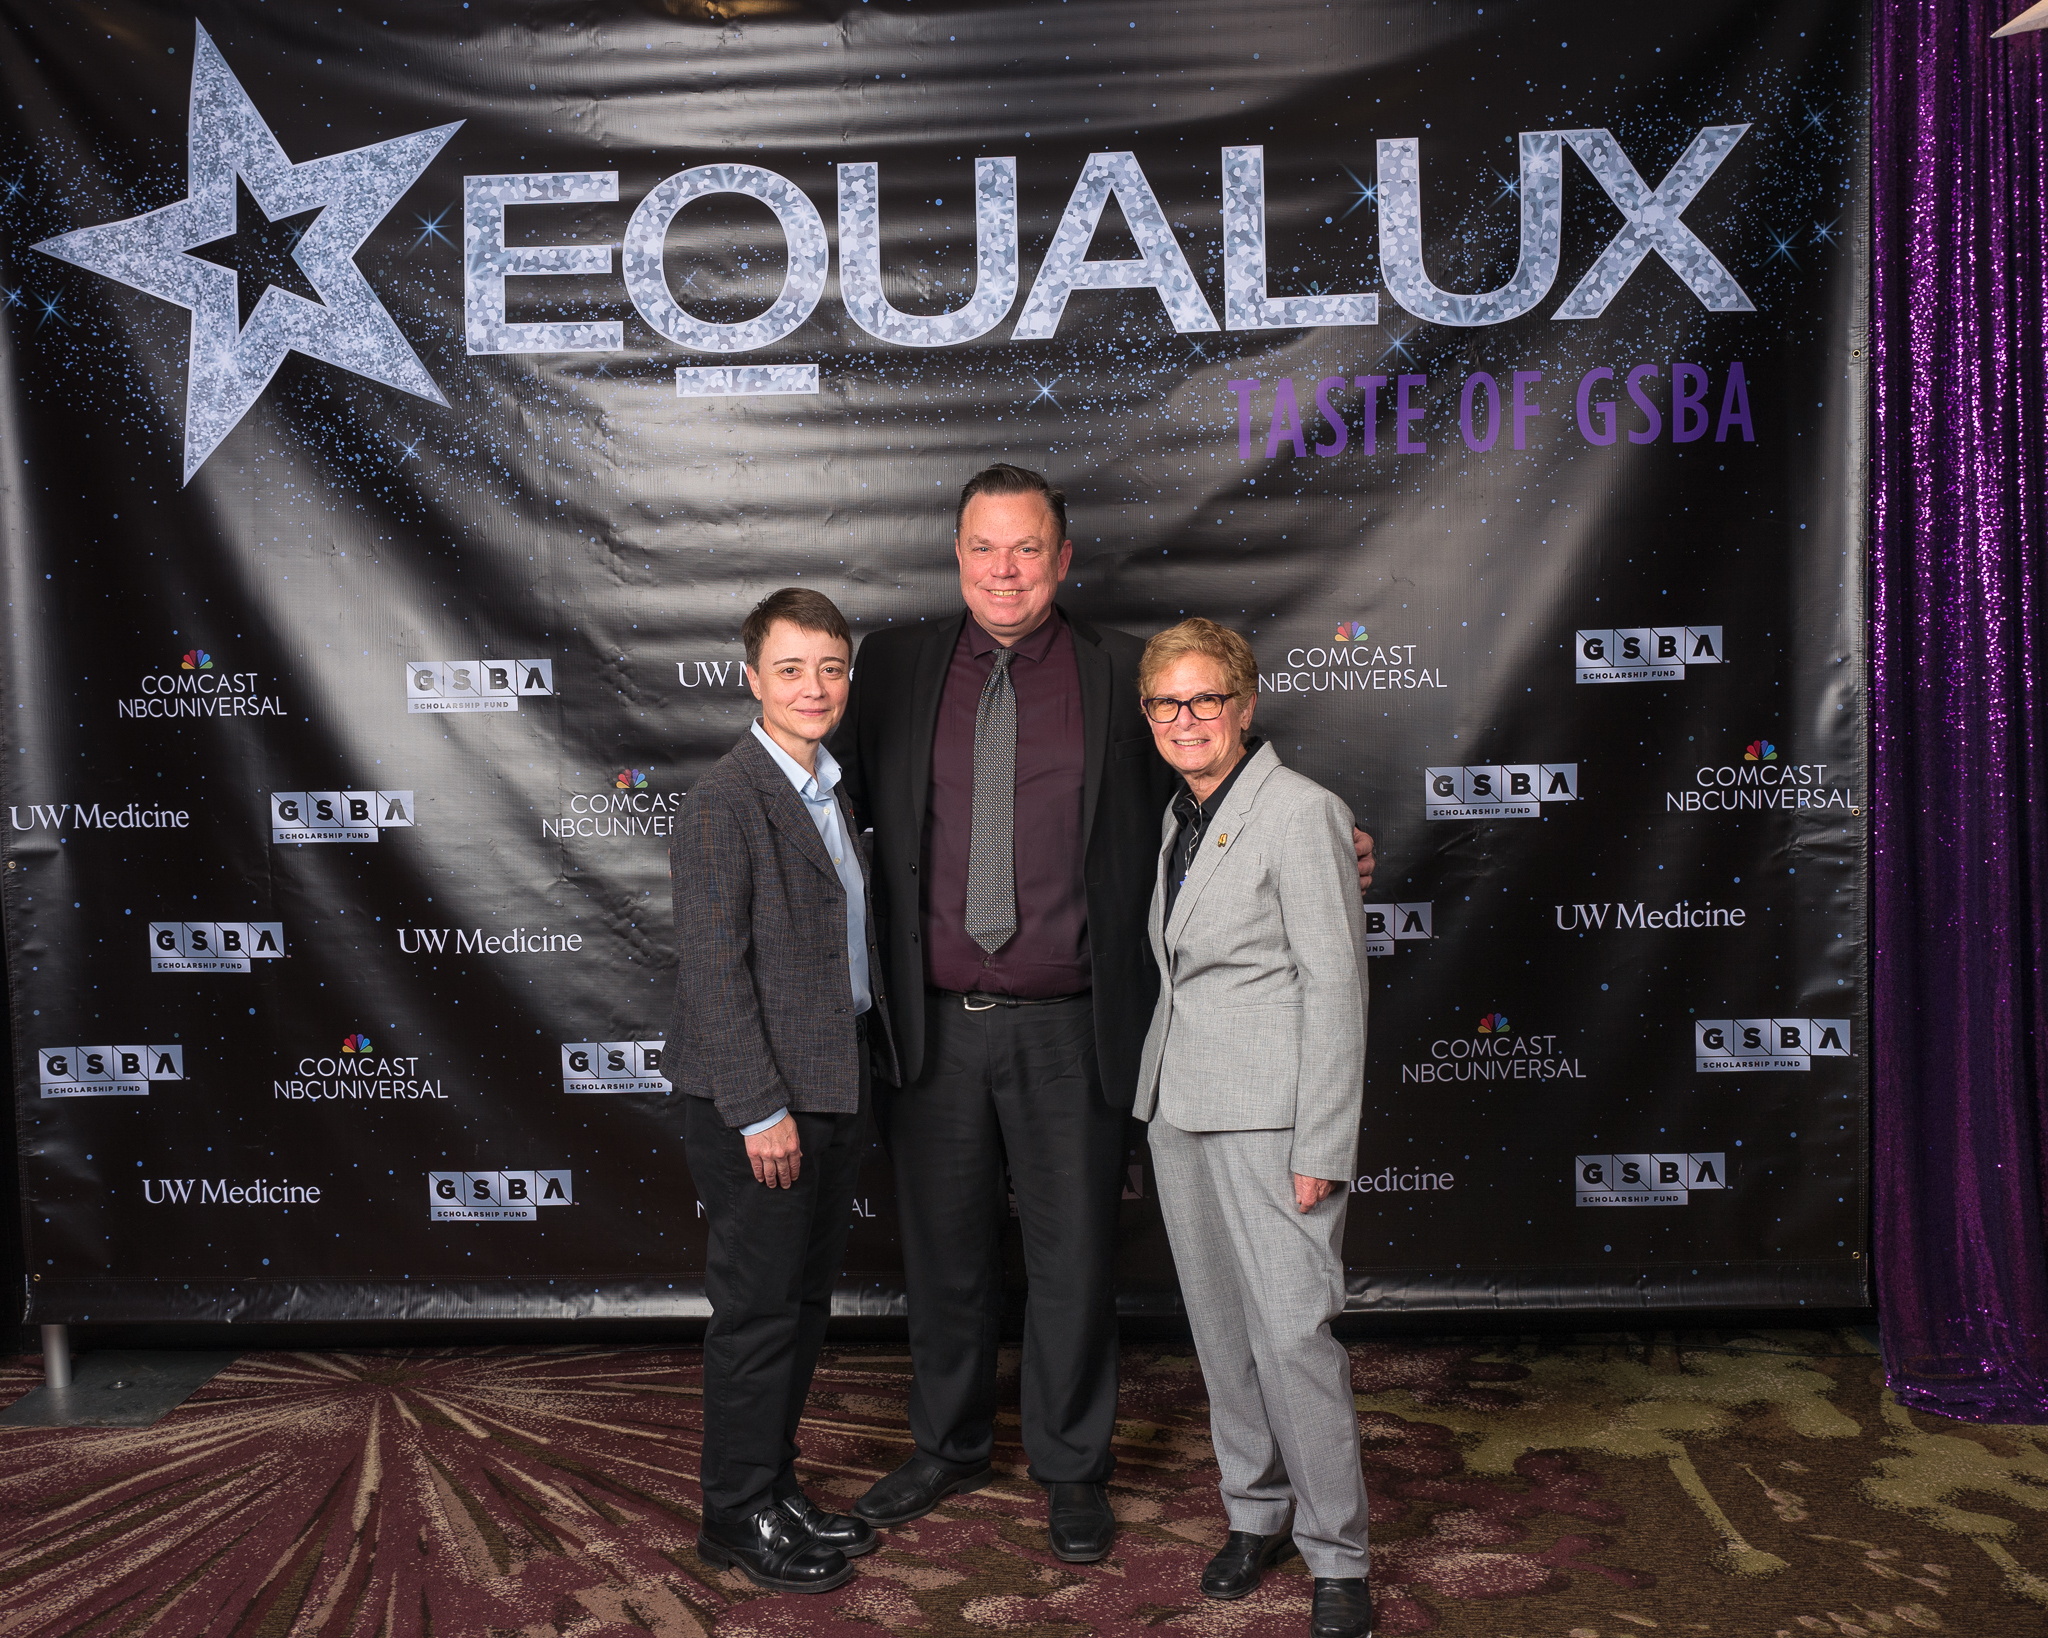 111718_GSBA EQUALUX at The Westin Seattle (Credit- Nate Gowdy)-127.jpg